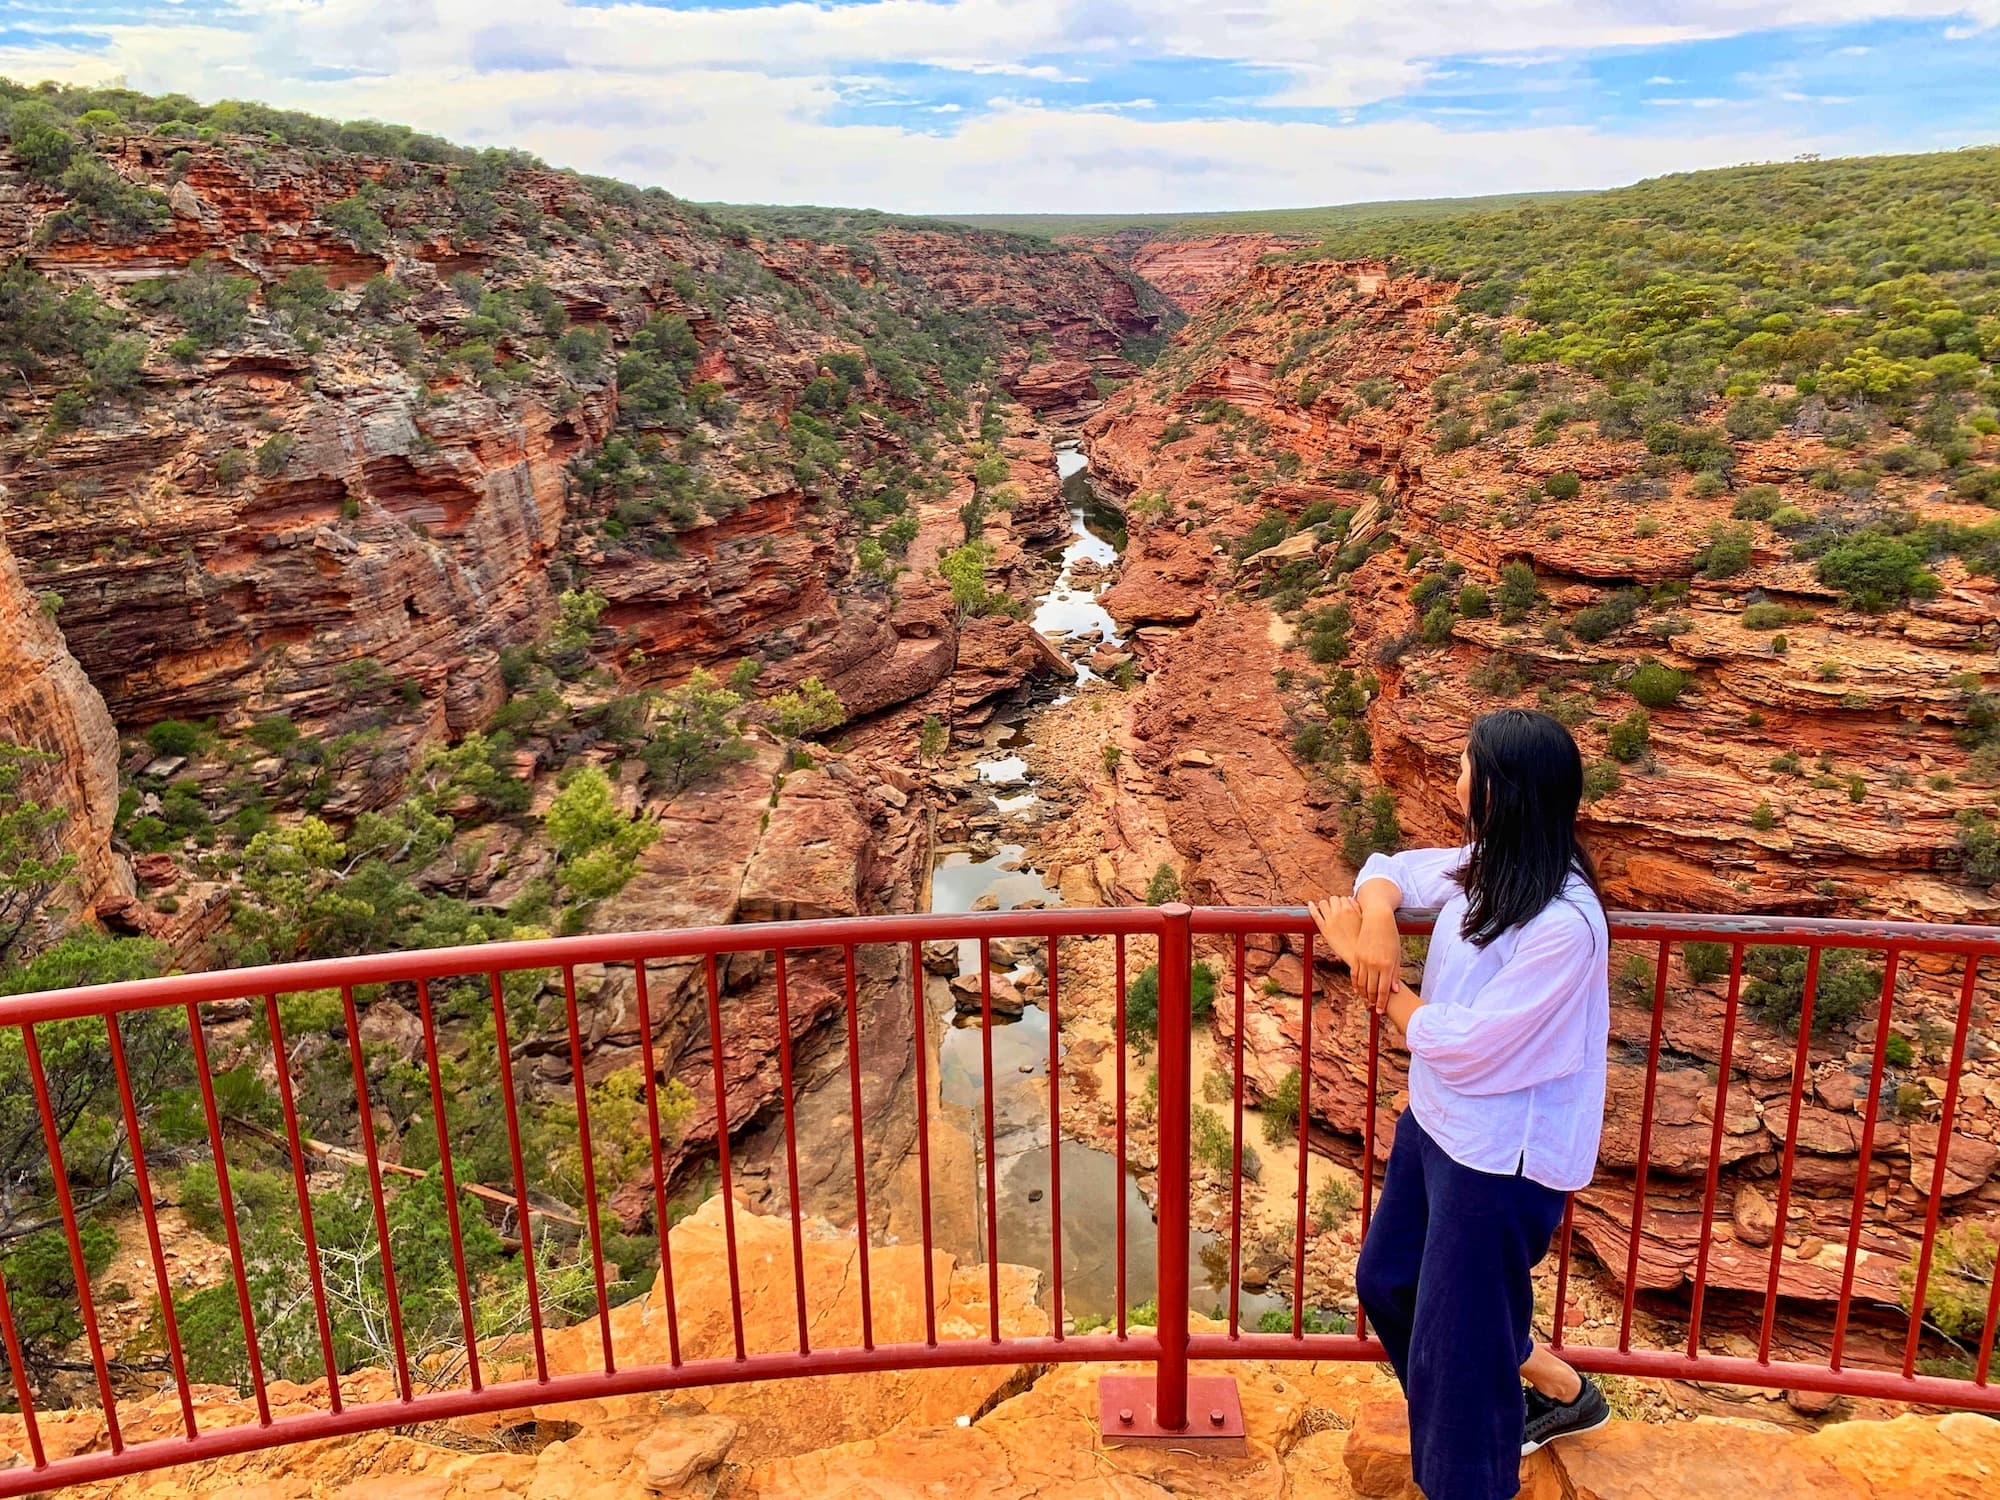 A woman takes in the view of Kalbarri Gorges